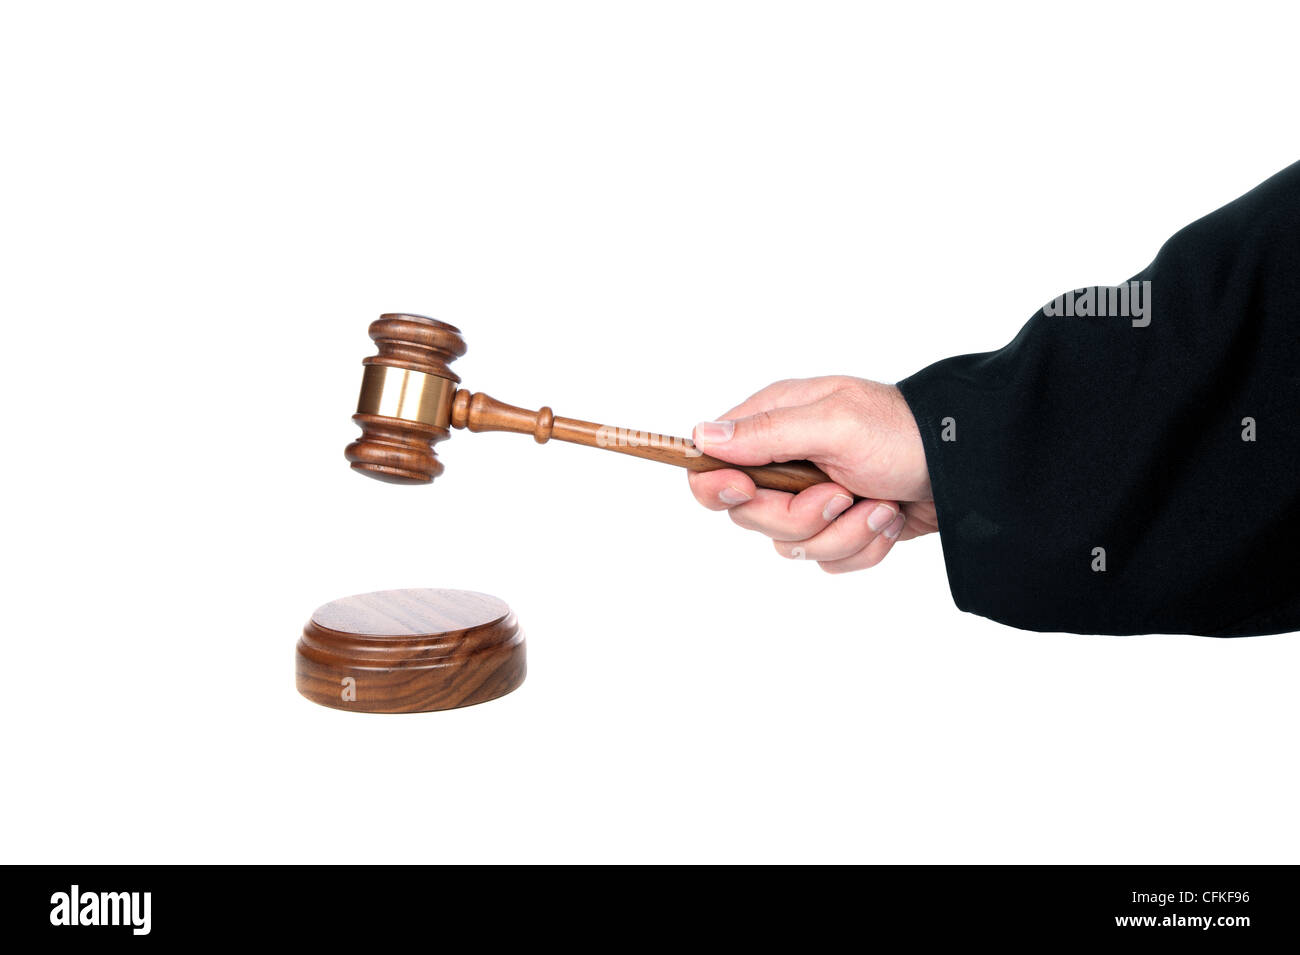 Judge hits a sound block with his gavel. Image is isolated for designer convenience. - Stock Image